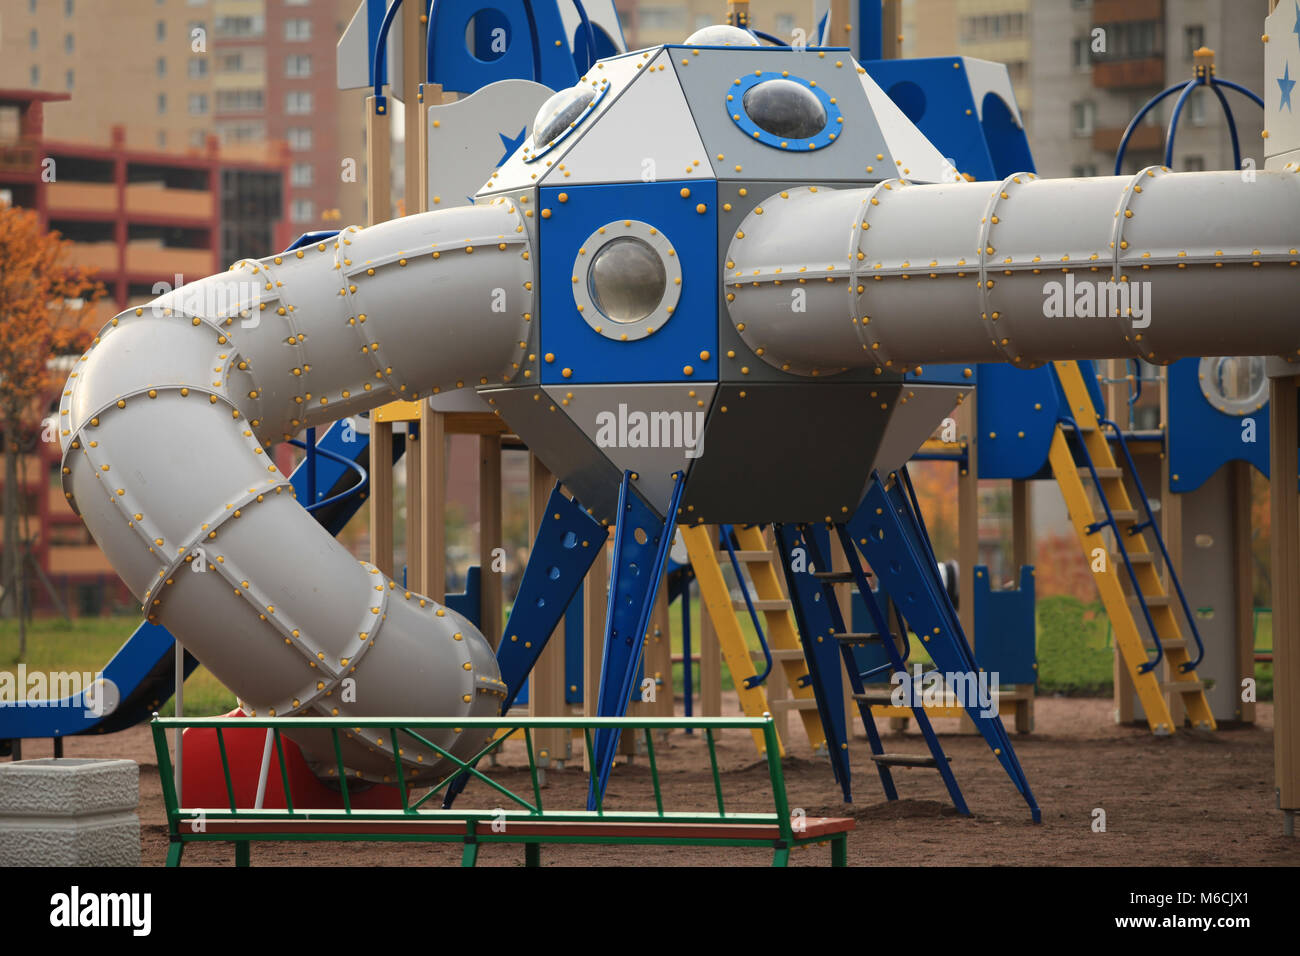 The gaming spaceship   in the playground - Stock Image